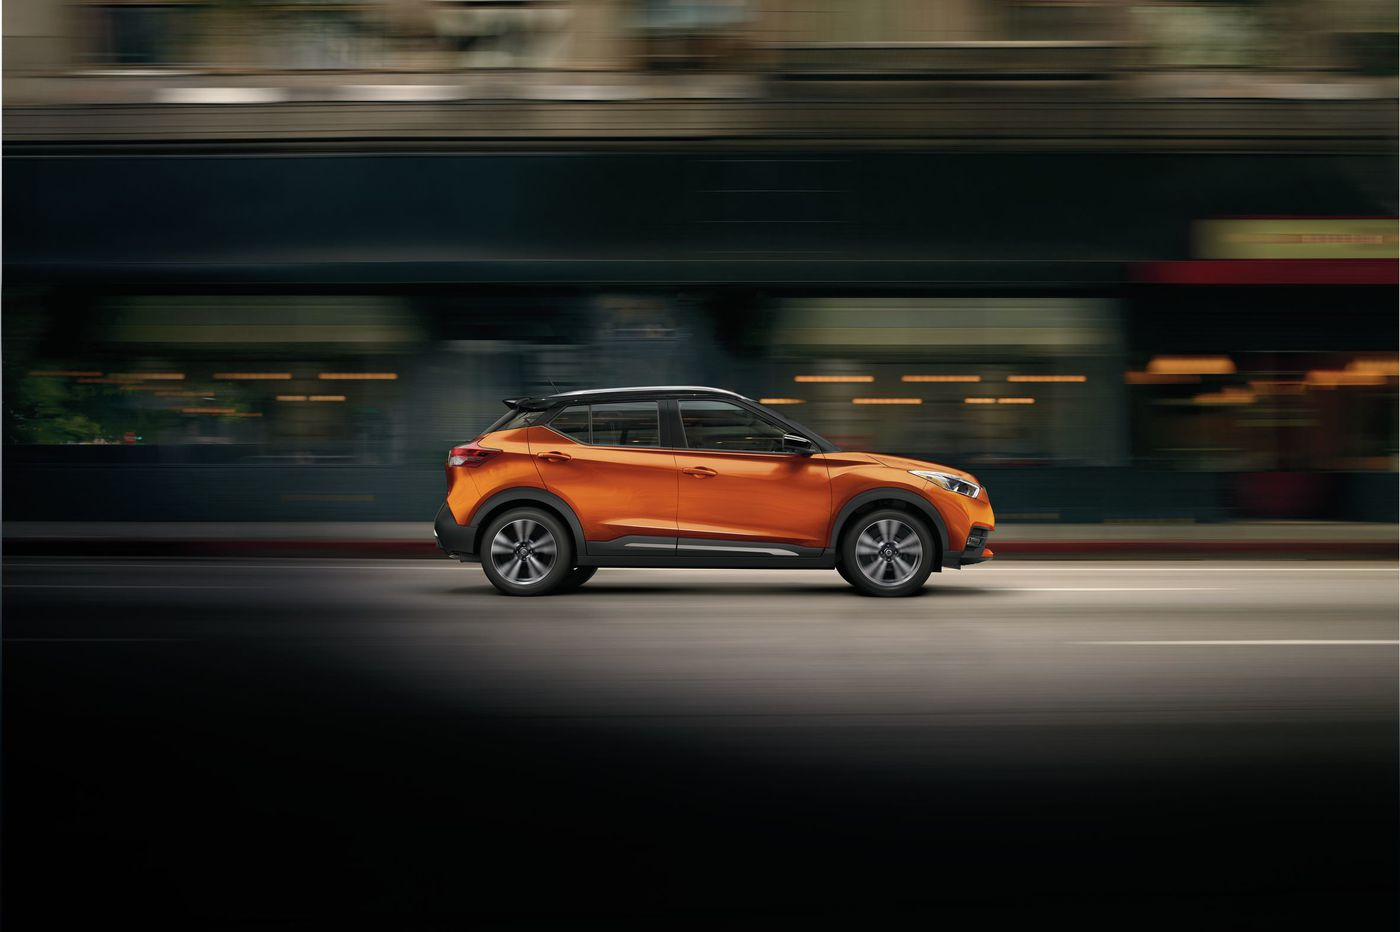 The 2019 Nissan Kicks adds another new choice in the small crossover market